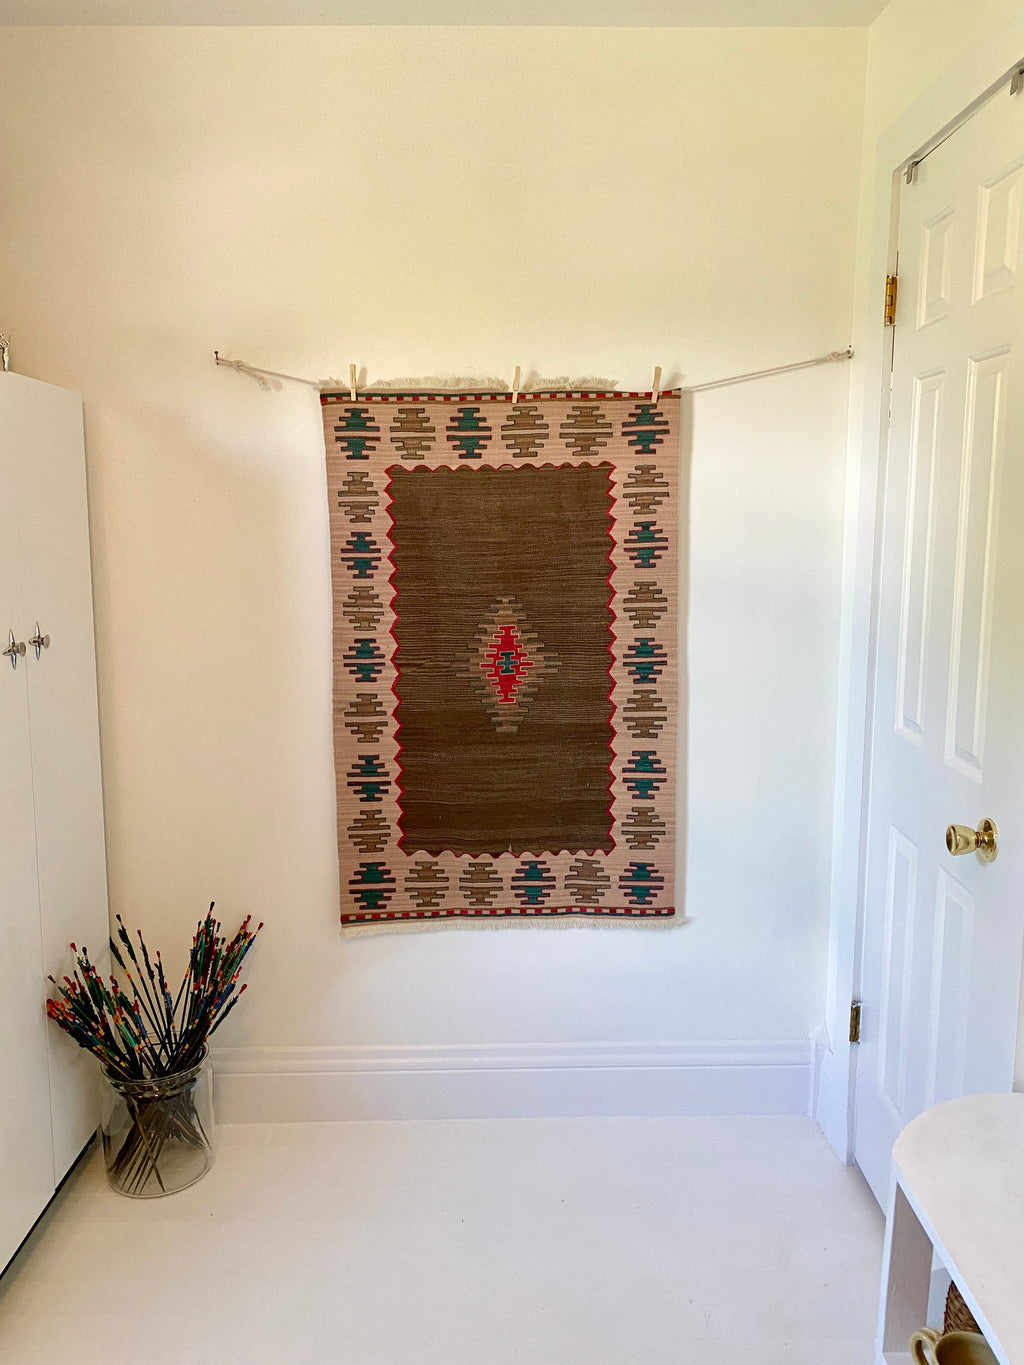 Vintage Kilim Tight Weave and Fine Wool in Browns, Teal, and Pink.